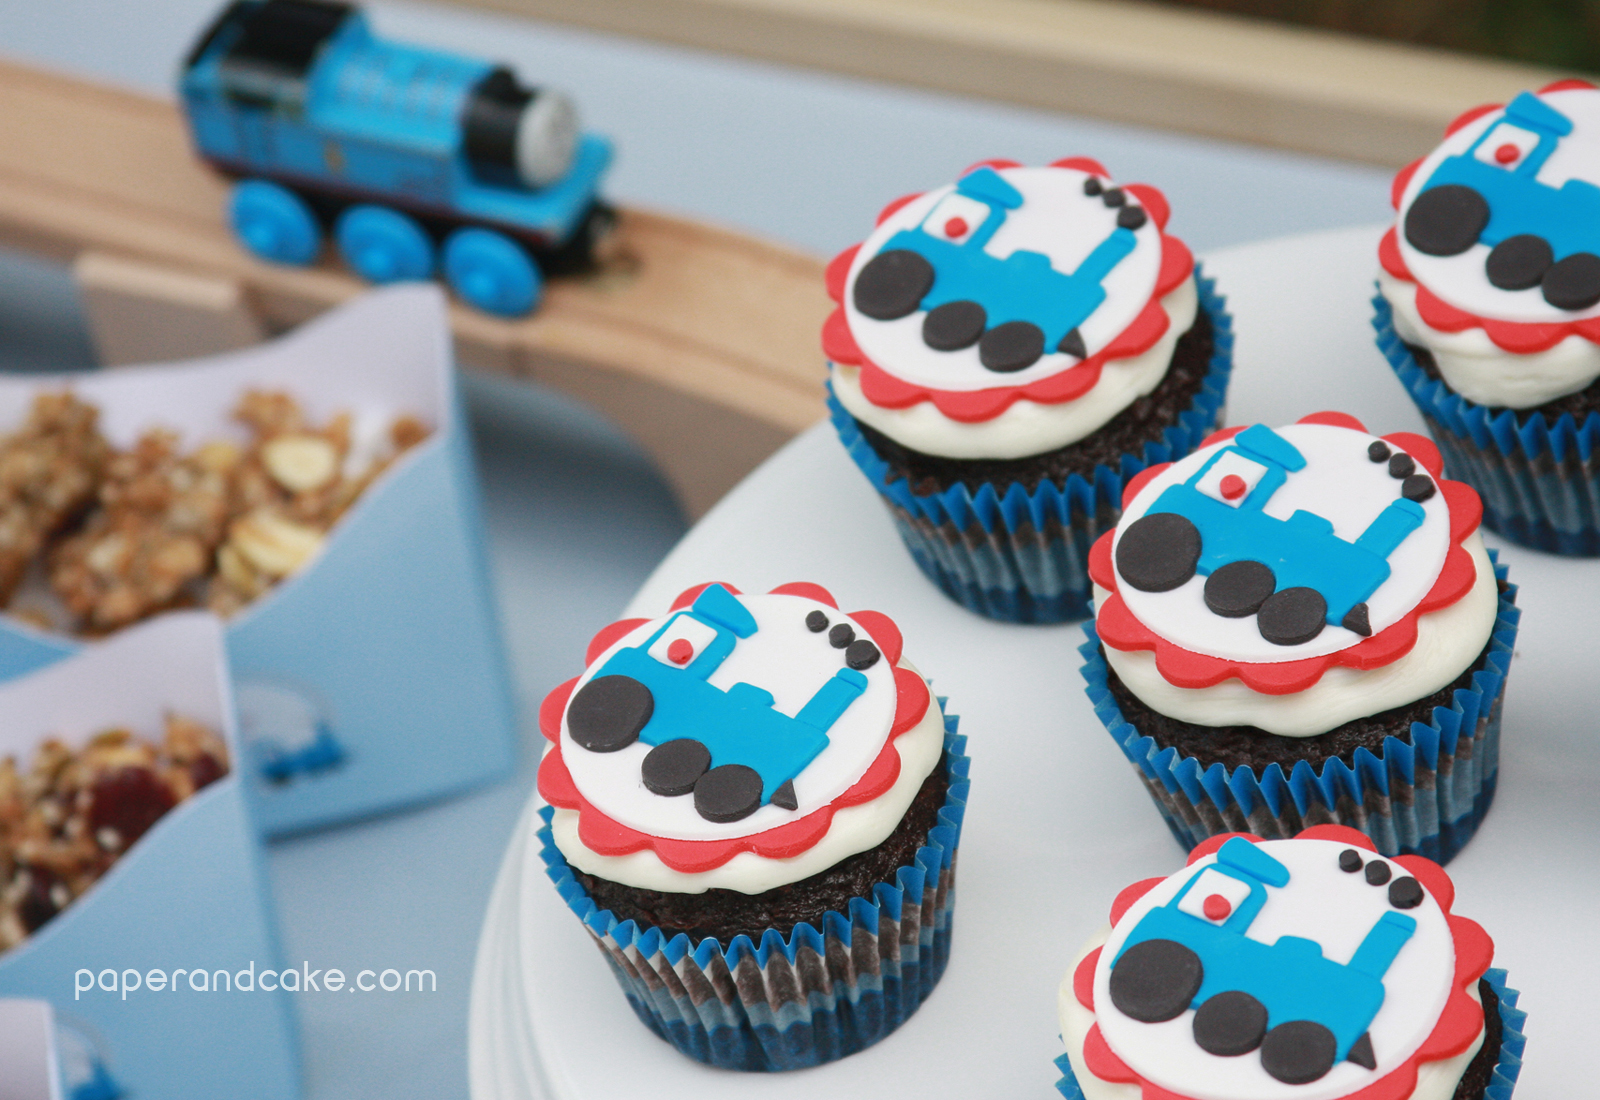 paper and cake New Party All Aboard the Printable Train